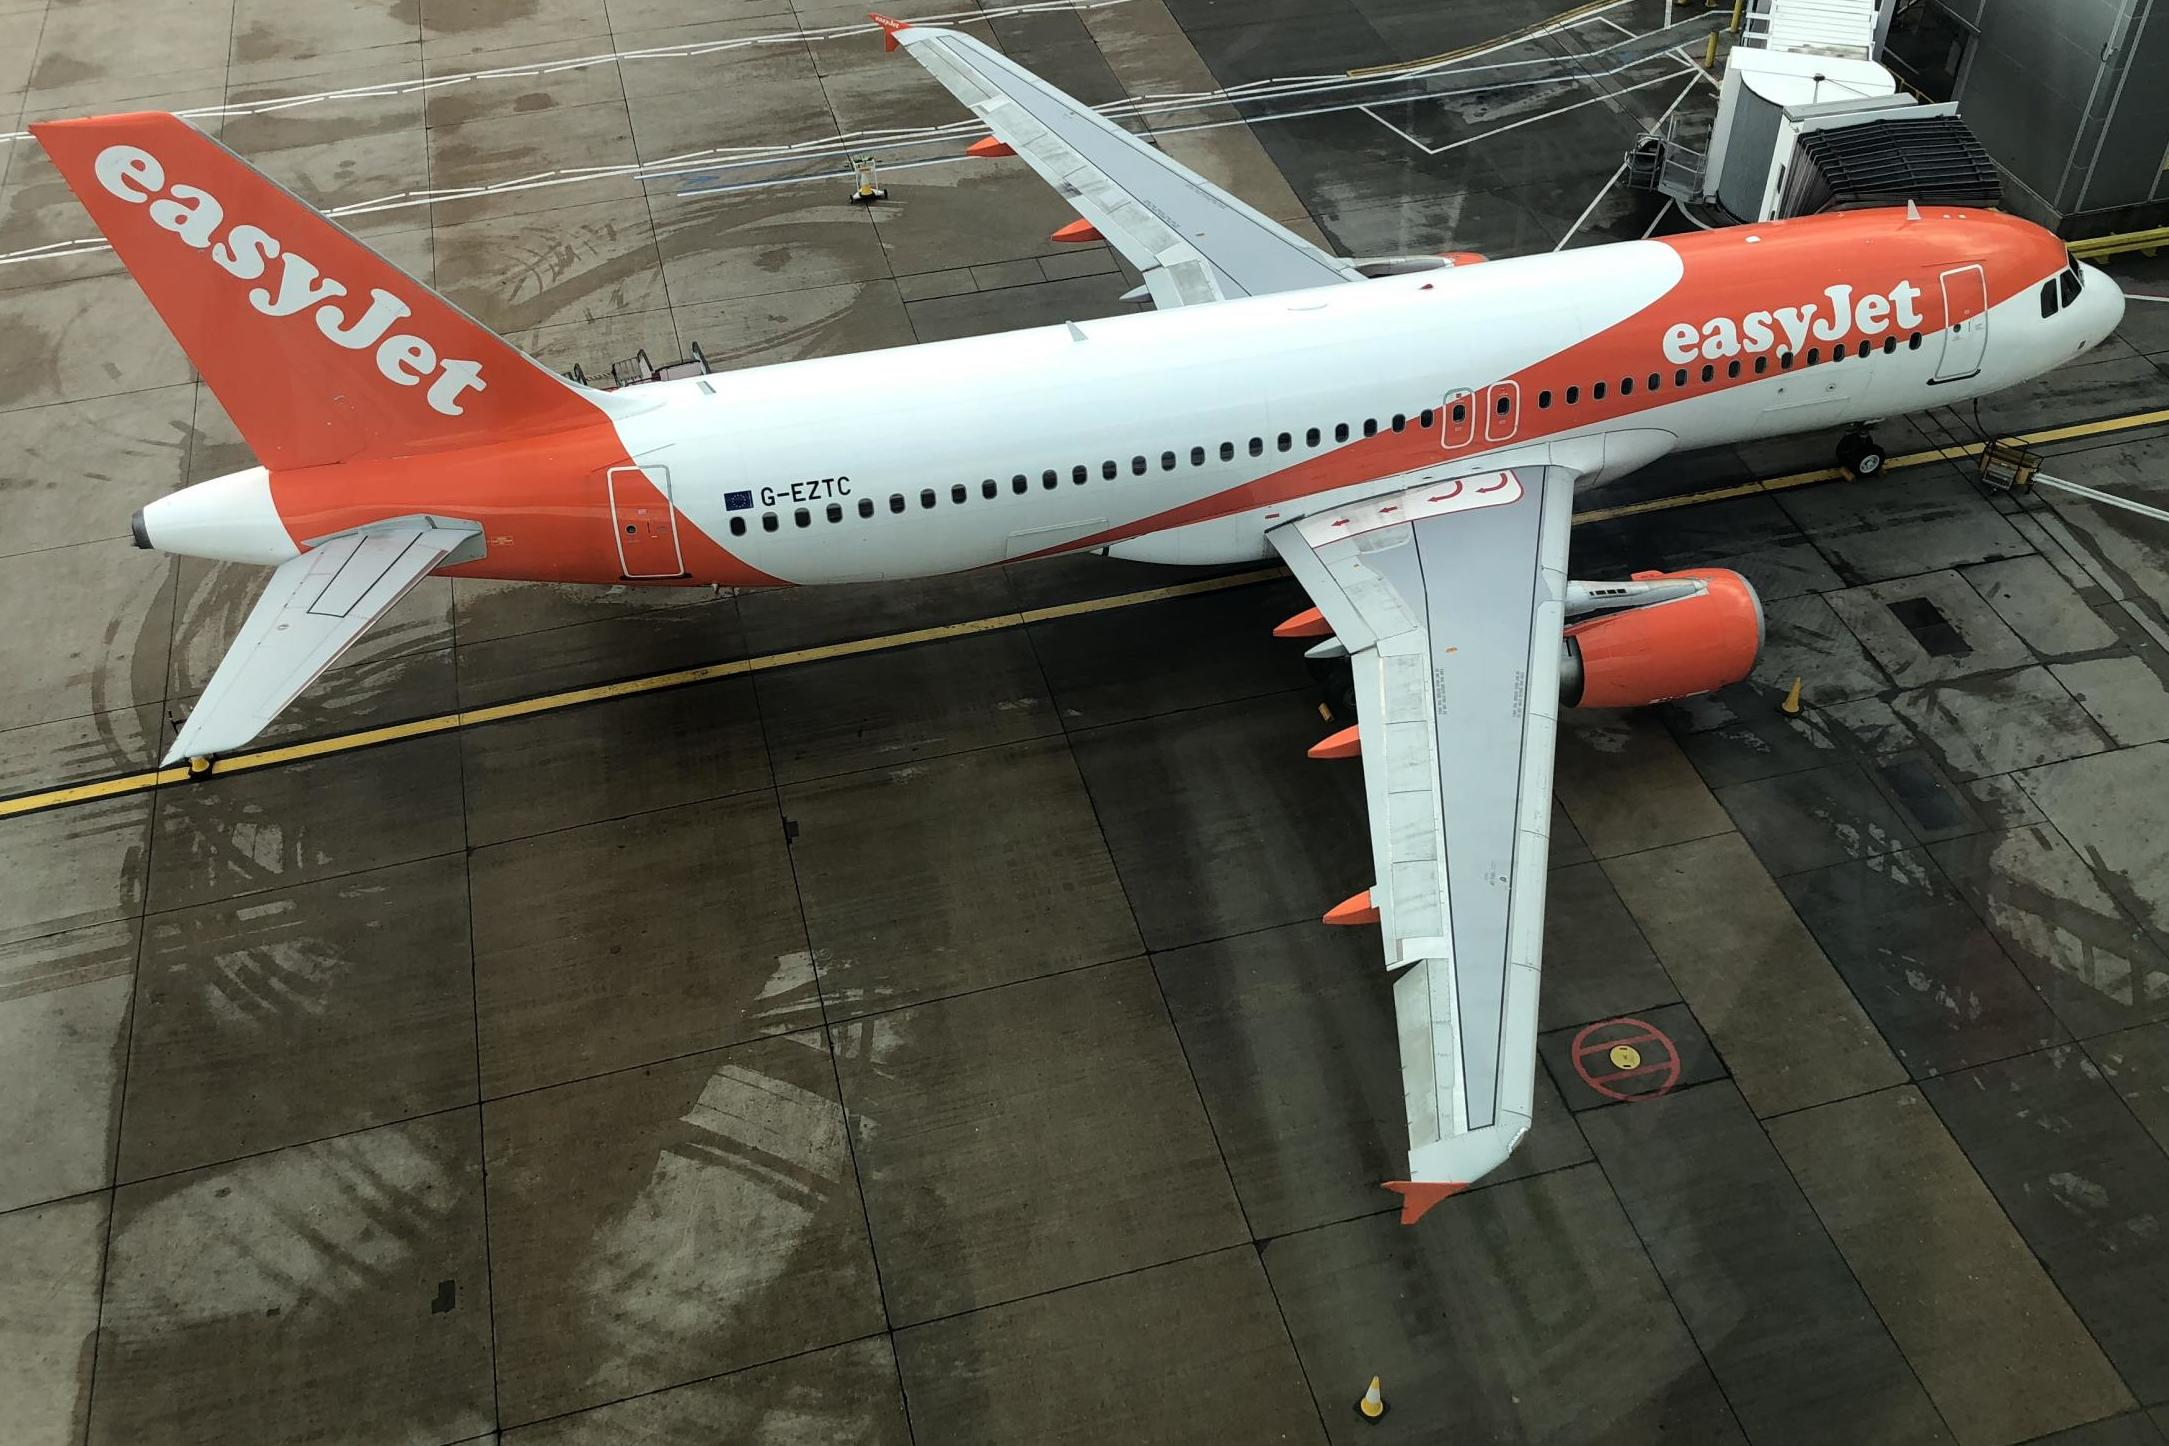 EasyJet claims to be first major airline to offset carbon emissions from all flights